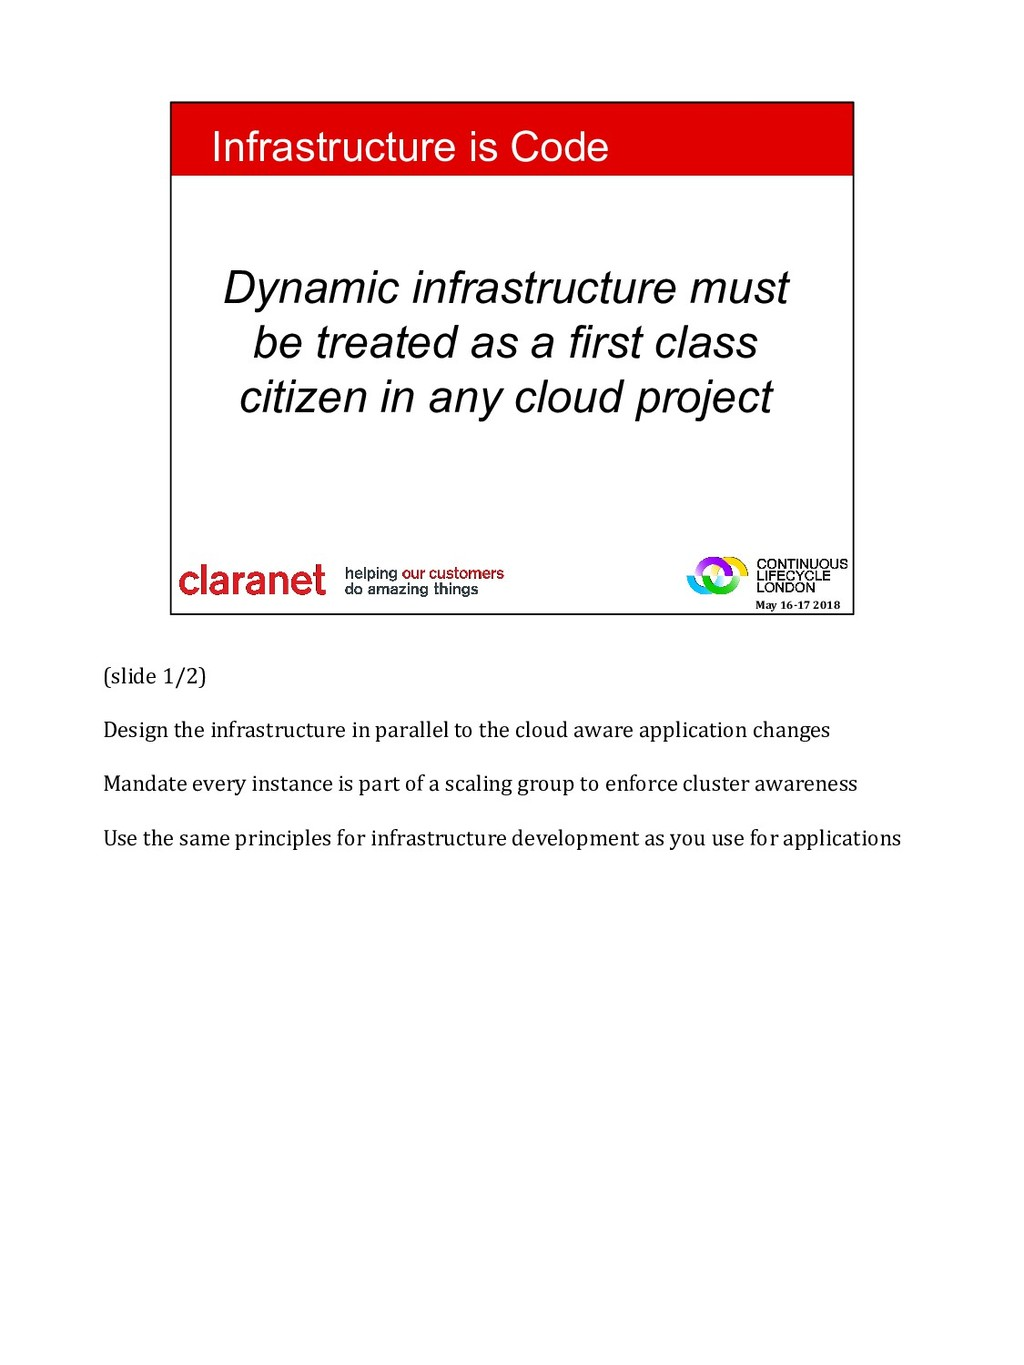 (slide 1/2) Design the infrastructure in parall...